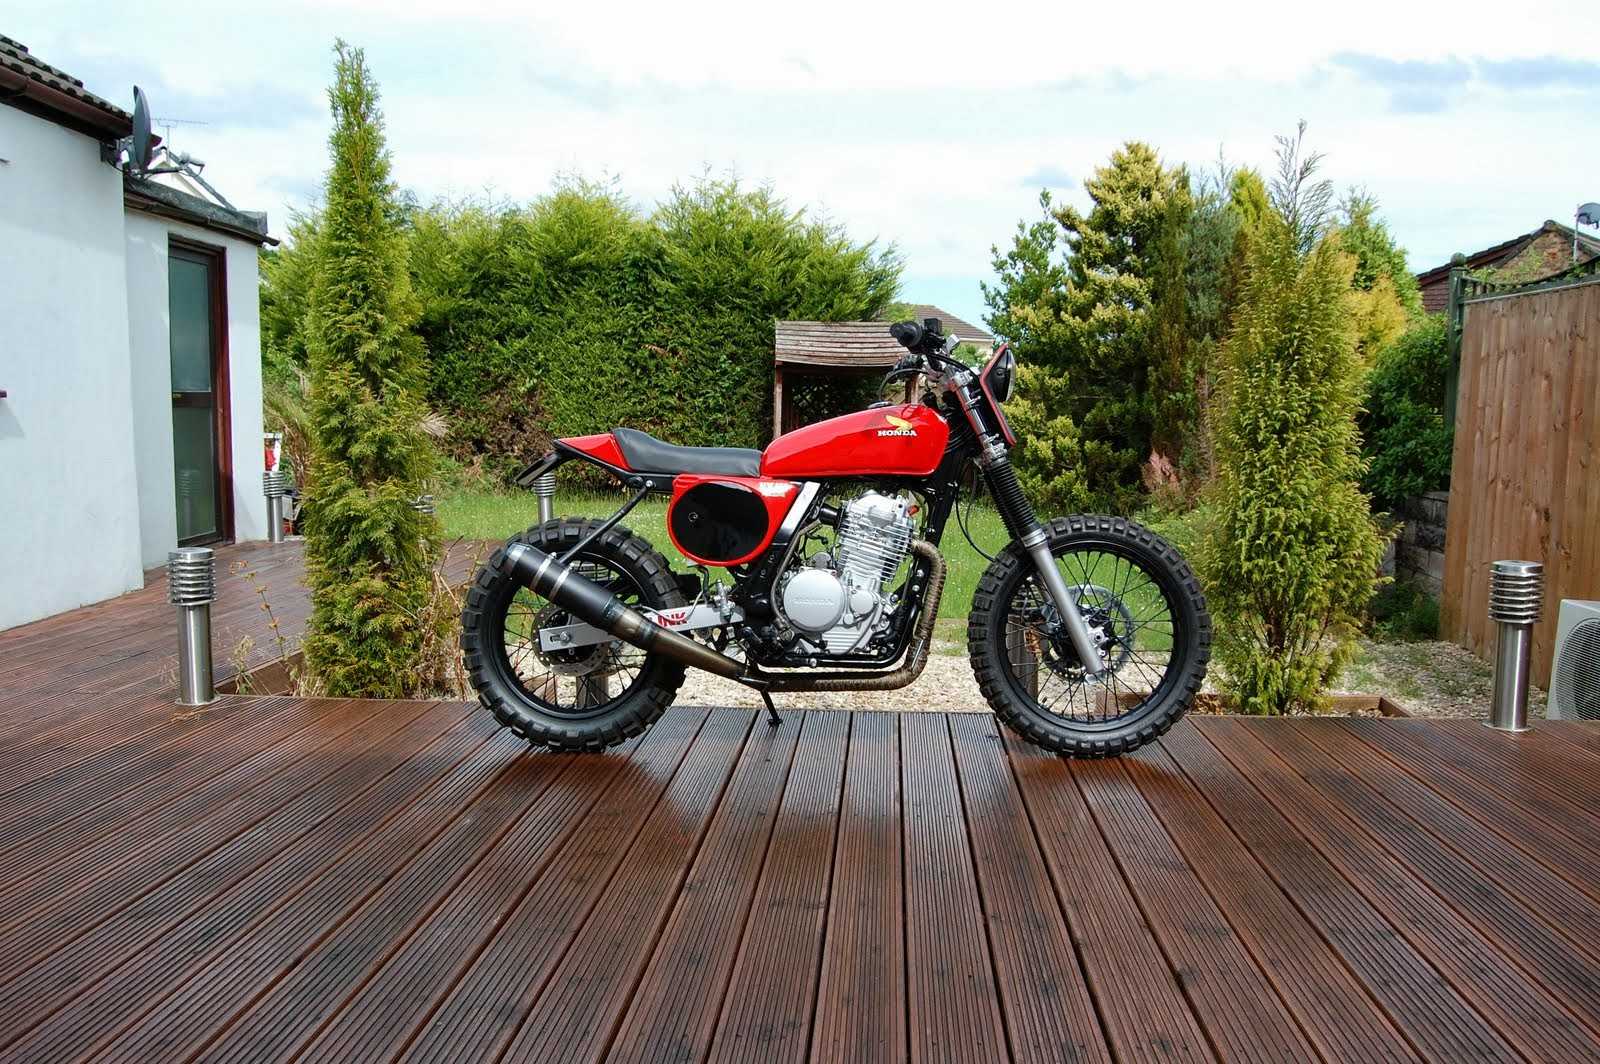 1997 Yamaha Xv 750 Virago likewise Contact likewise Yamaha Virago Cafe Racer Conversion Kit as well M 4MSB5YW1haGEgeHY5MjA likewise Custom Triumph Scrambler. on yamaha 750 special parts